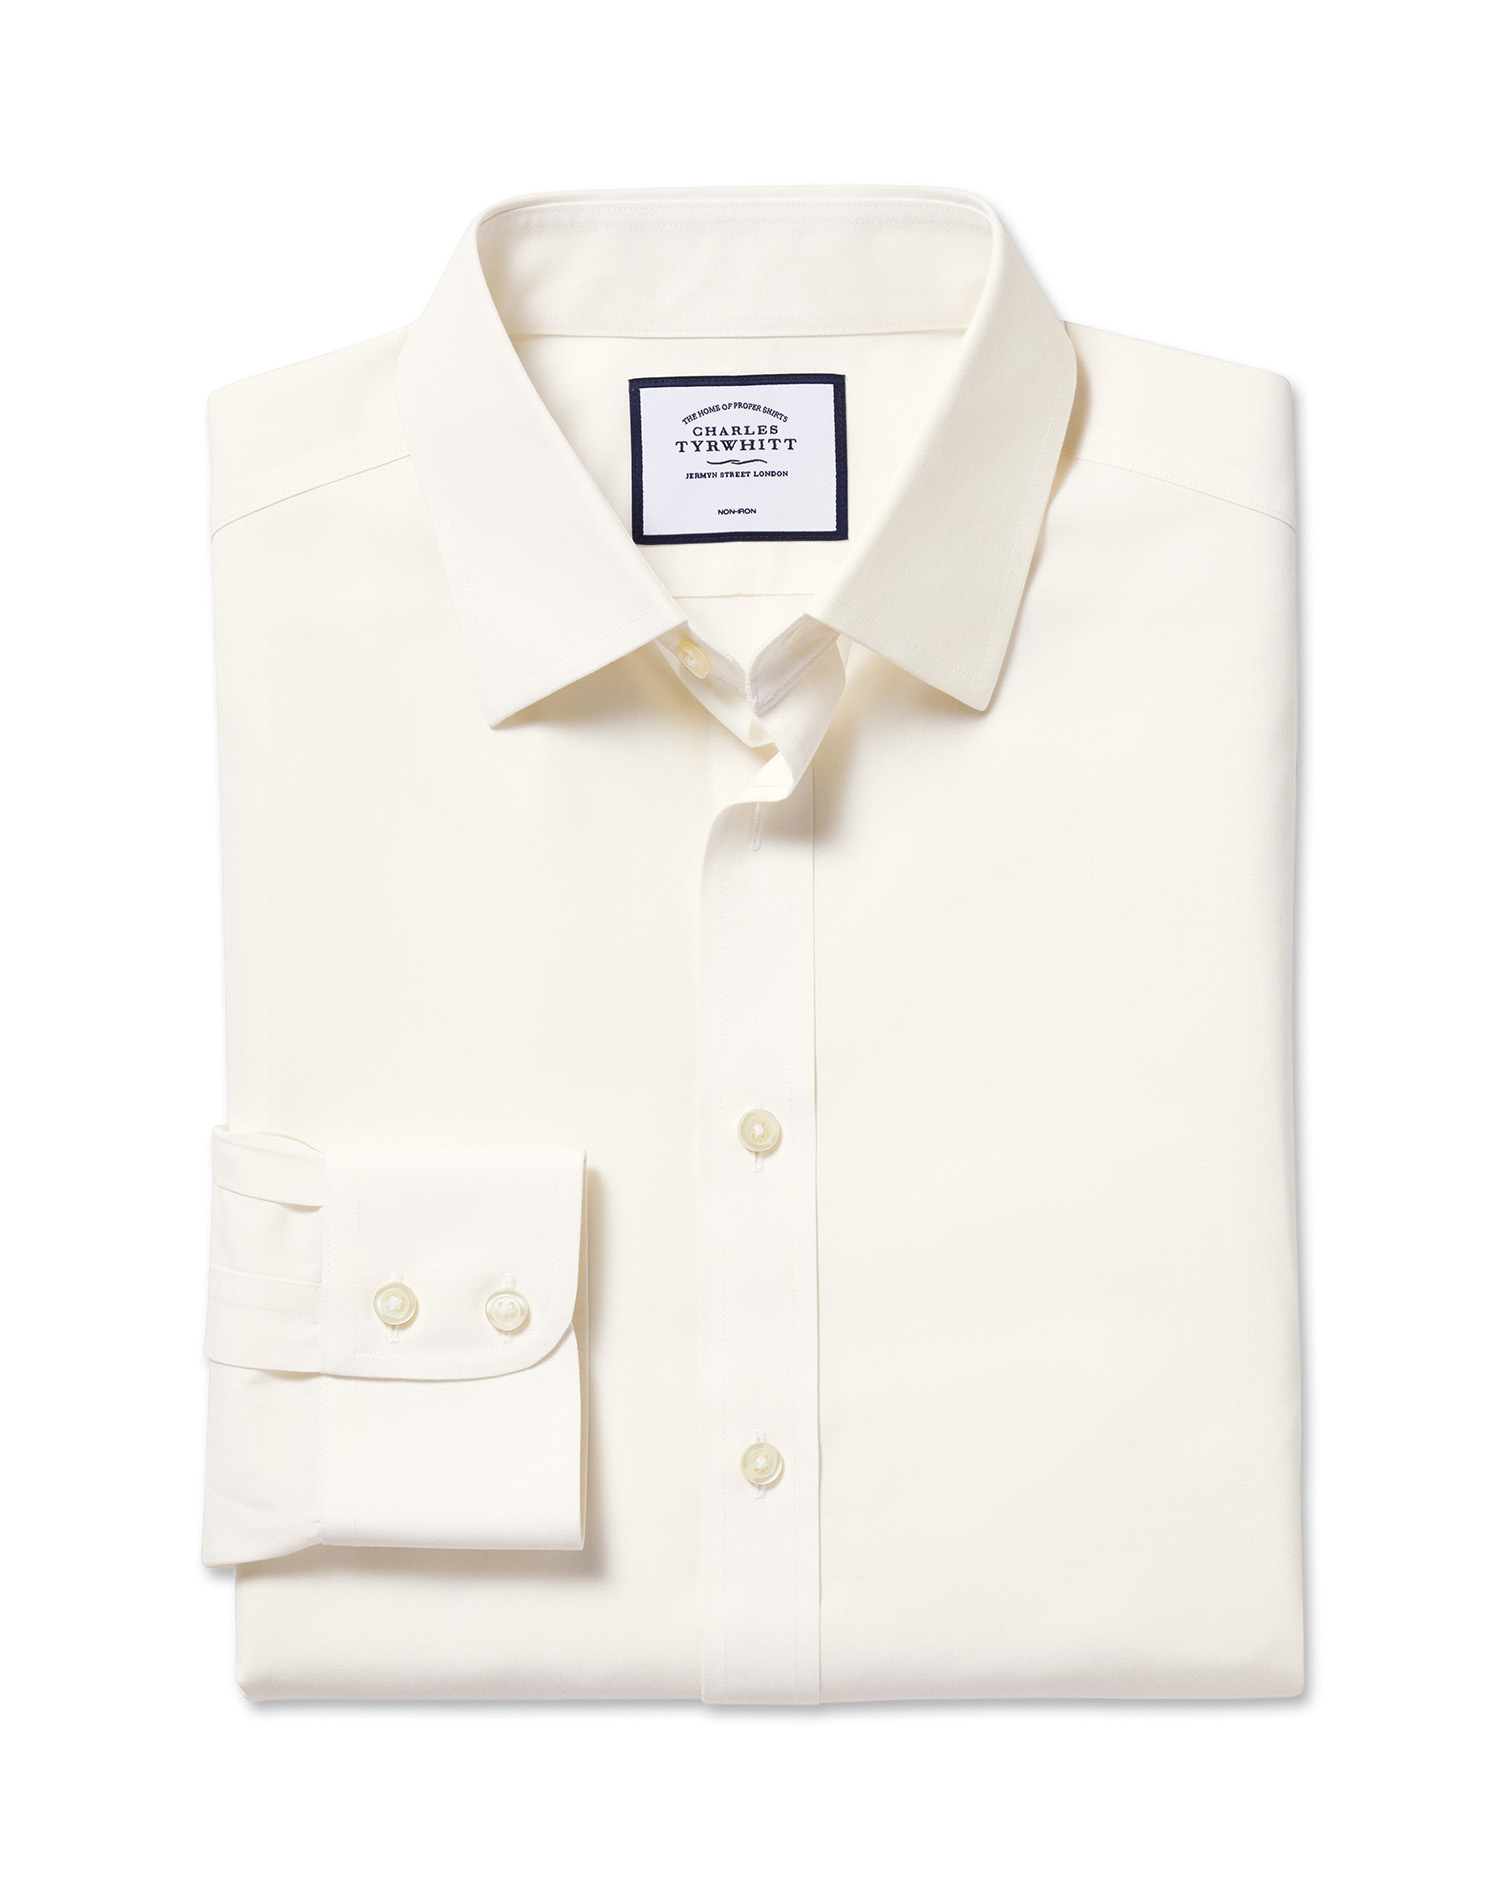 Slim Fit Non-Iron Poplin Cream Cotton Formal Shirt Double Cuff Size 17/34 by Charles Tyrwhitt